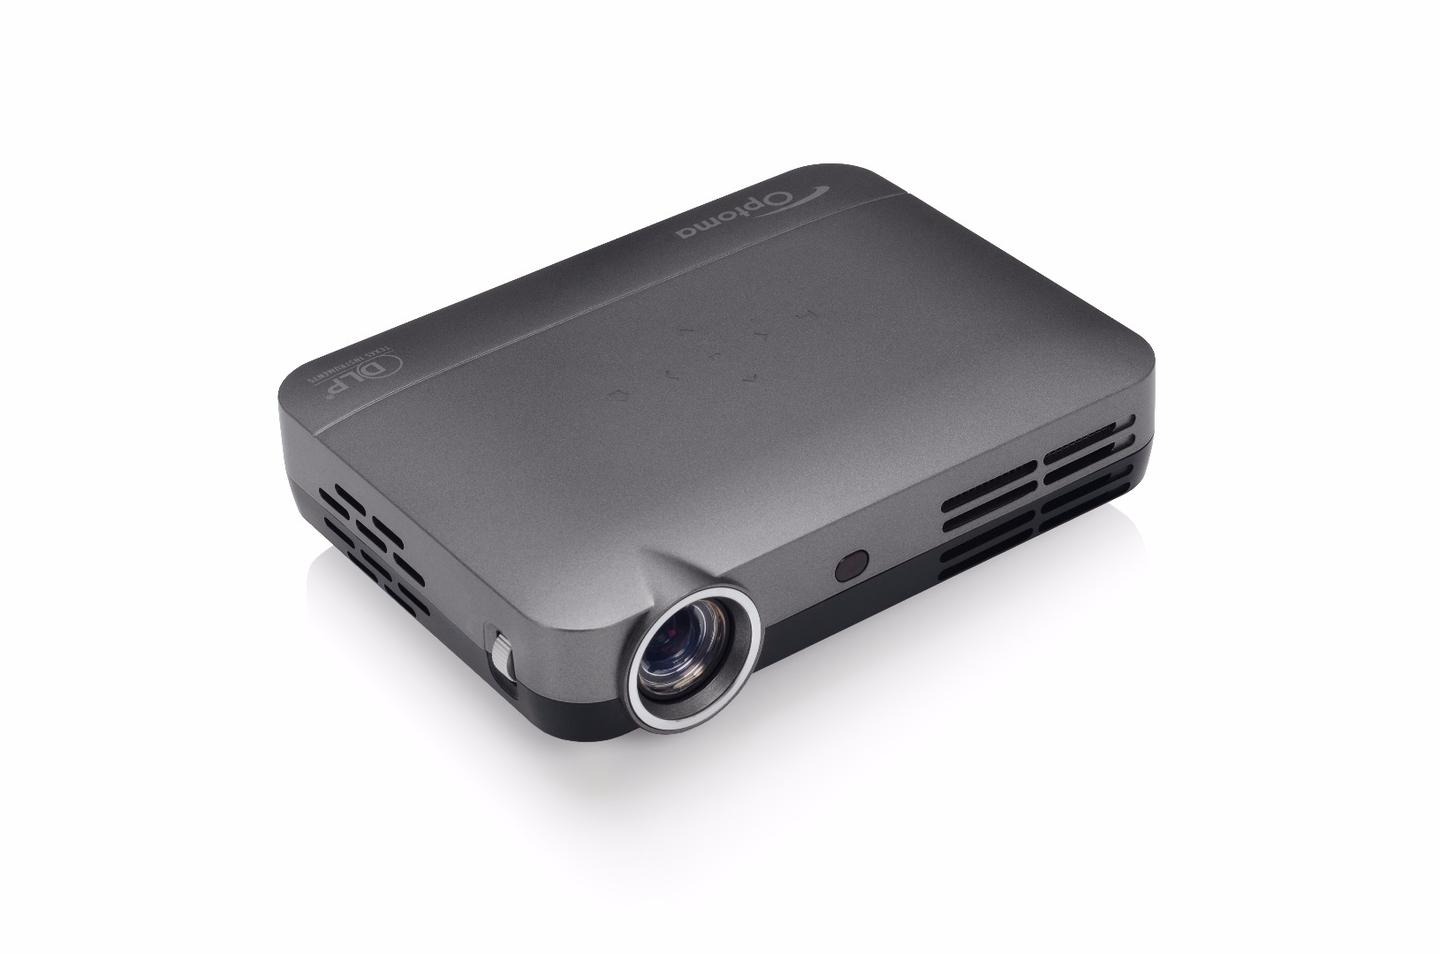 The Optoma IntelliGO-S1 can throw content up to 150 inches at 720p resolution, while an Android OS gives users access to hundreds of thousands of apps